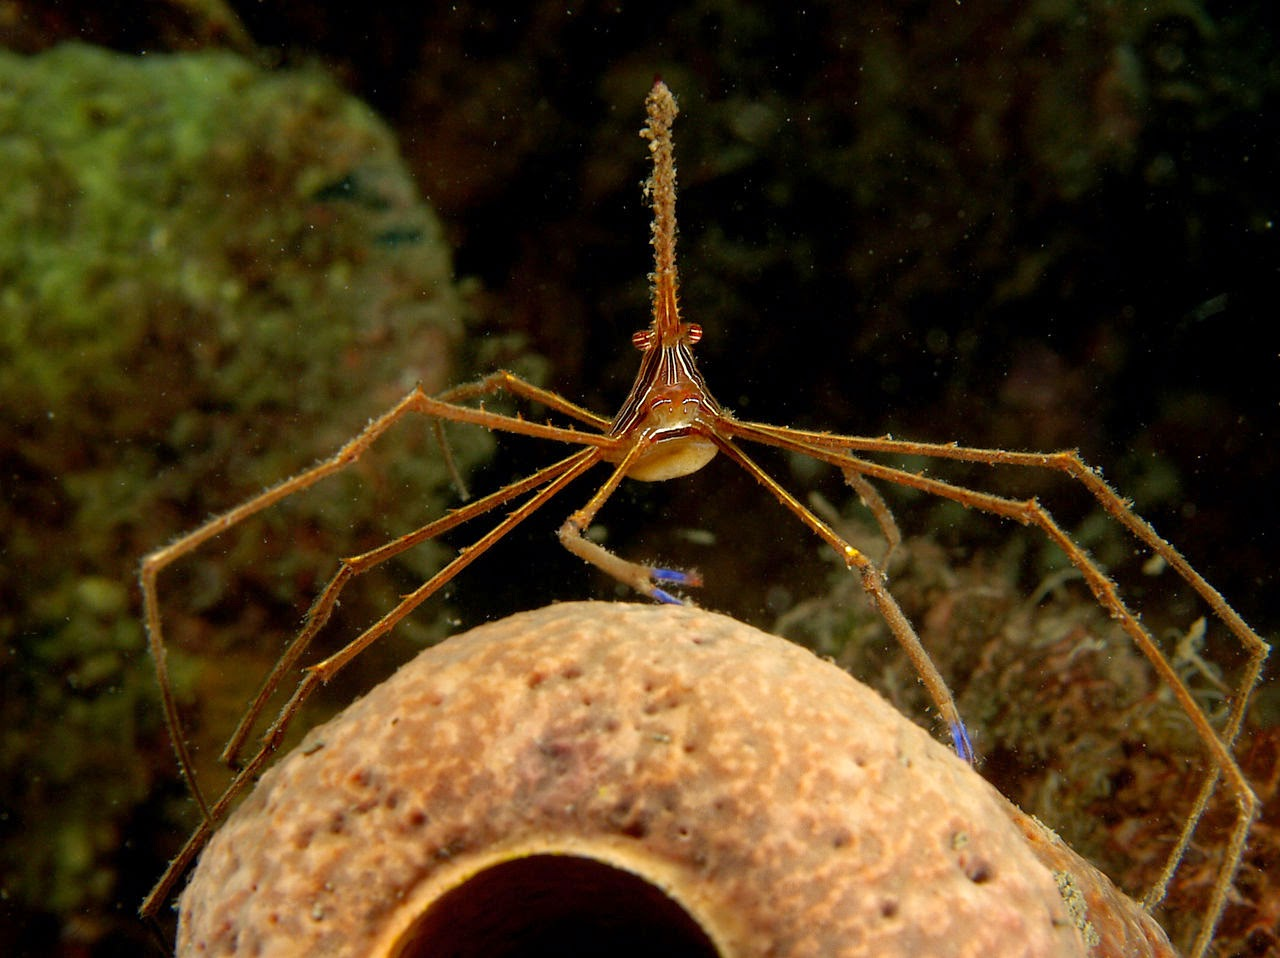 Image showing an arrow crab (Stenorhynchus seticornis)